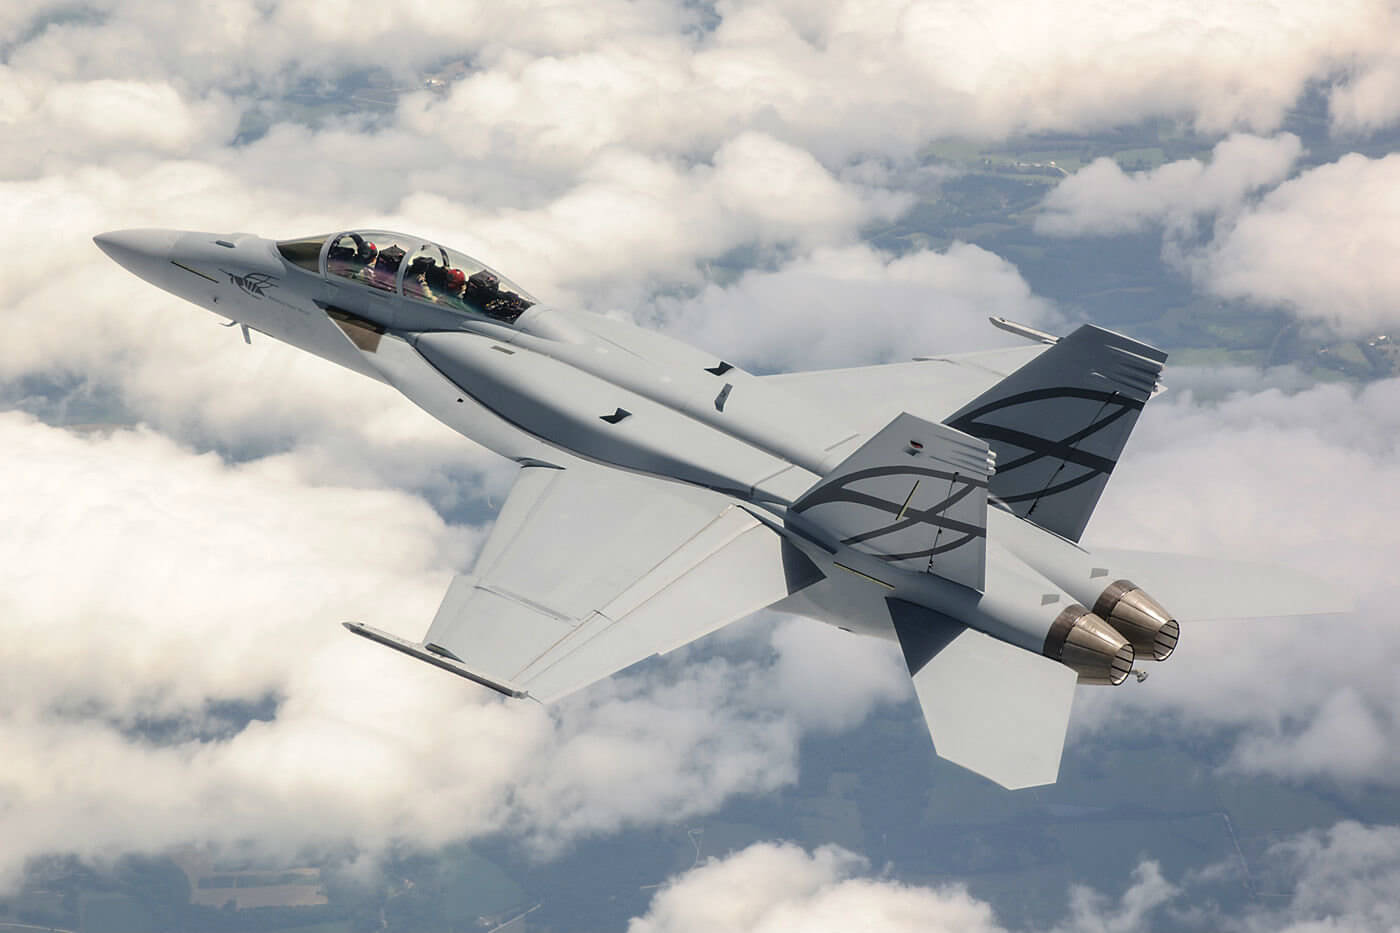 Boeing Super Hornet - Boeing Photo